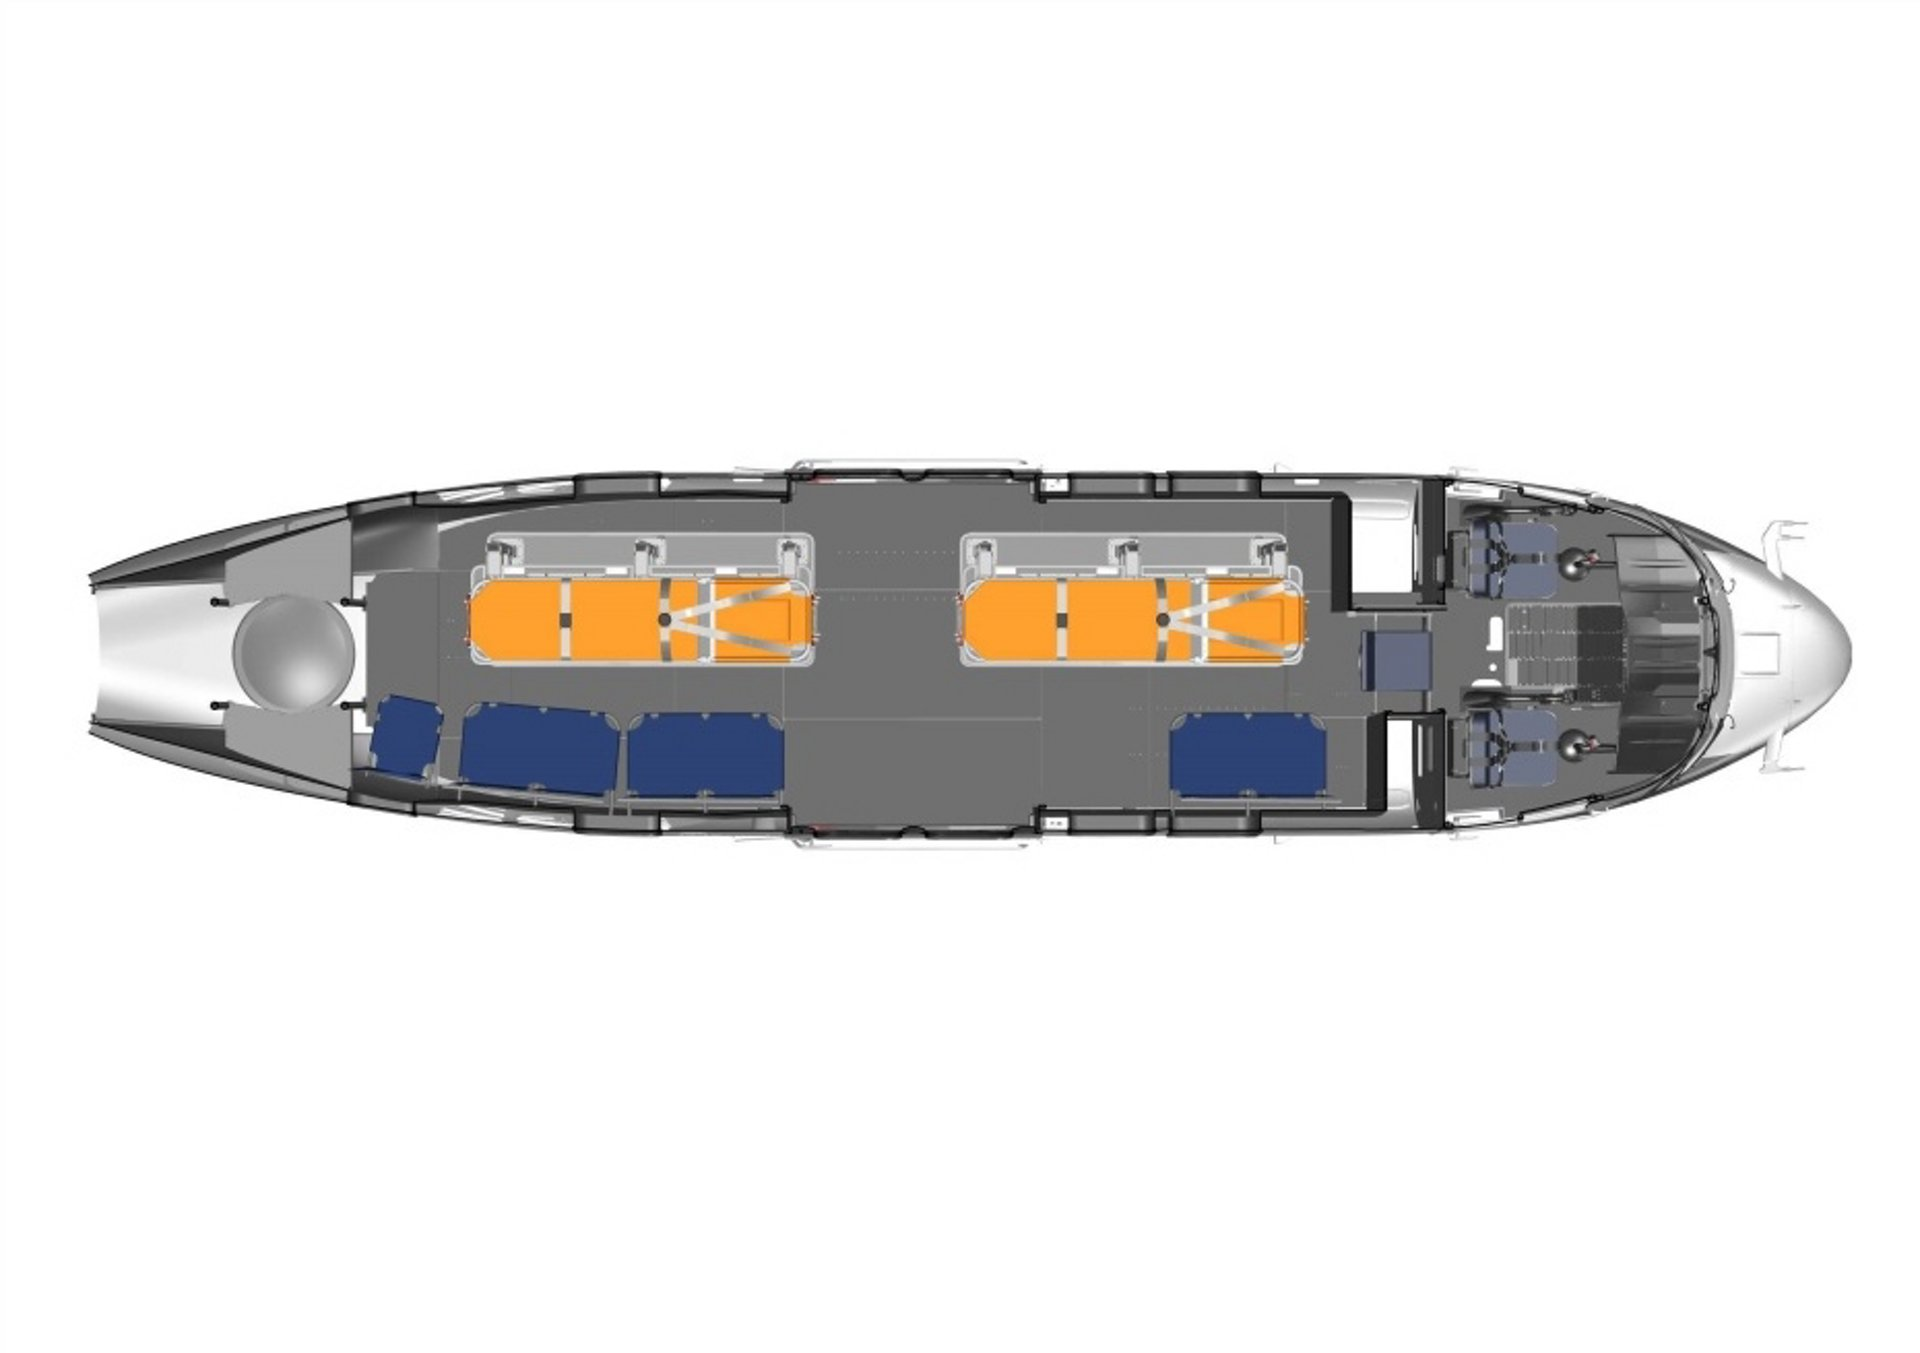 Diagram of an Airbus H215 helicopter cabin configured for casualty evacuation (Casevac) missions.